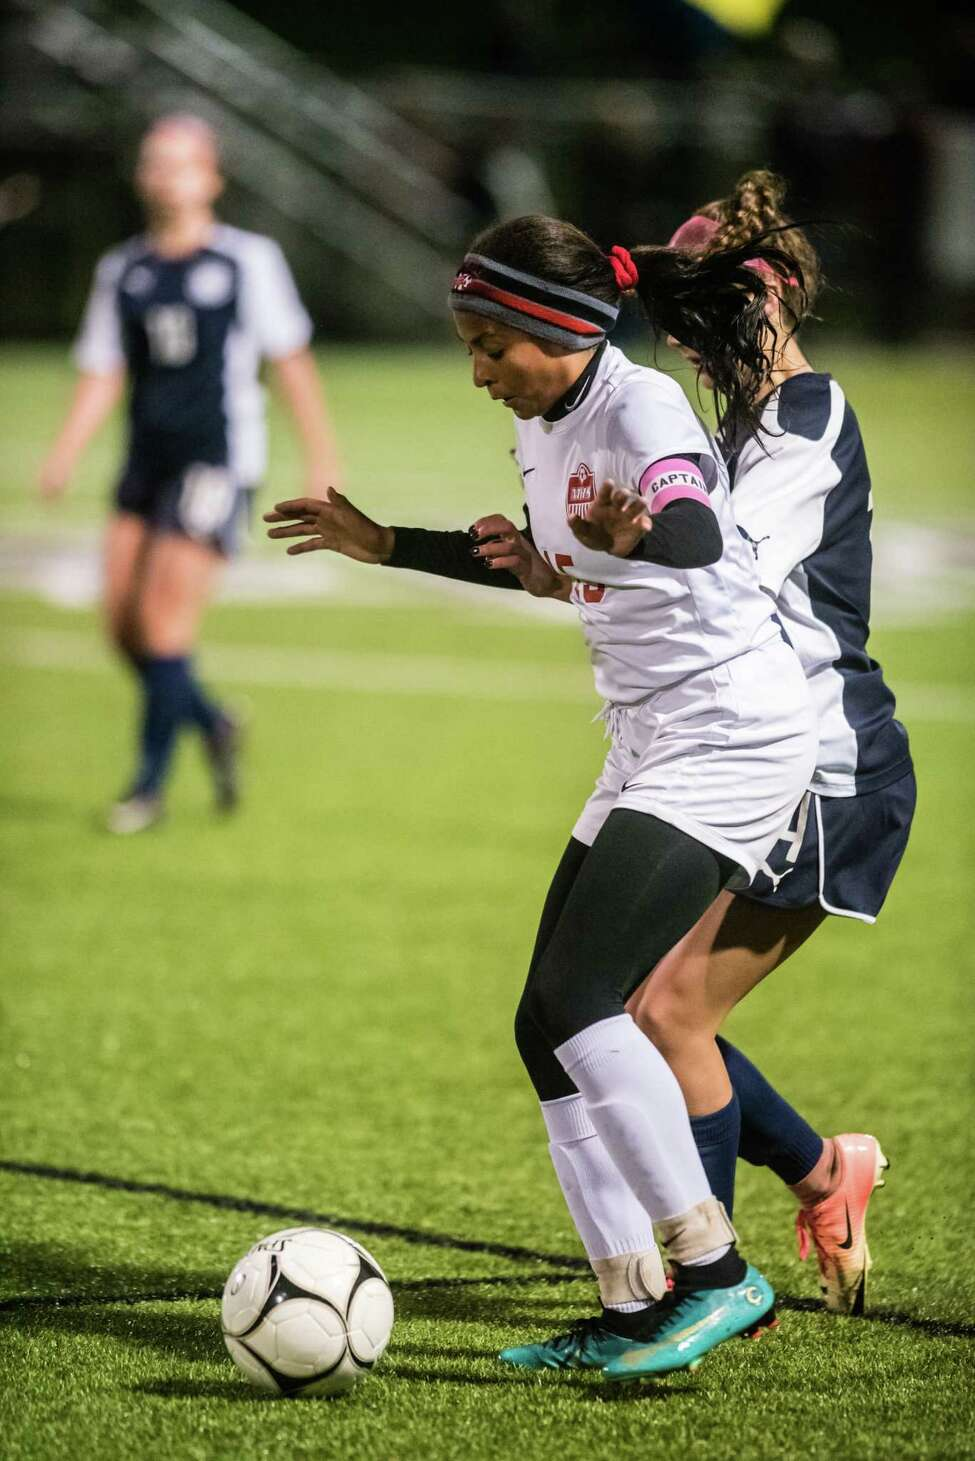 Mechanicville's Jada Brown handles the ball during the game against Academy of Holy Names as the class b girls' soccer semifinals were held at Lansingburgh High School in Troy, NY Tuesday, October 23rd, 2018. Photo by Eric Jenks for the Times Union